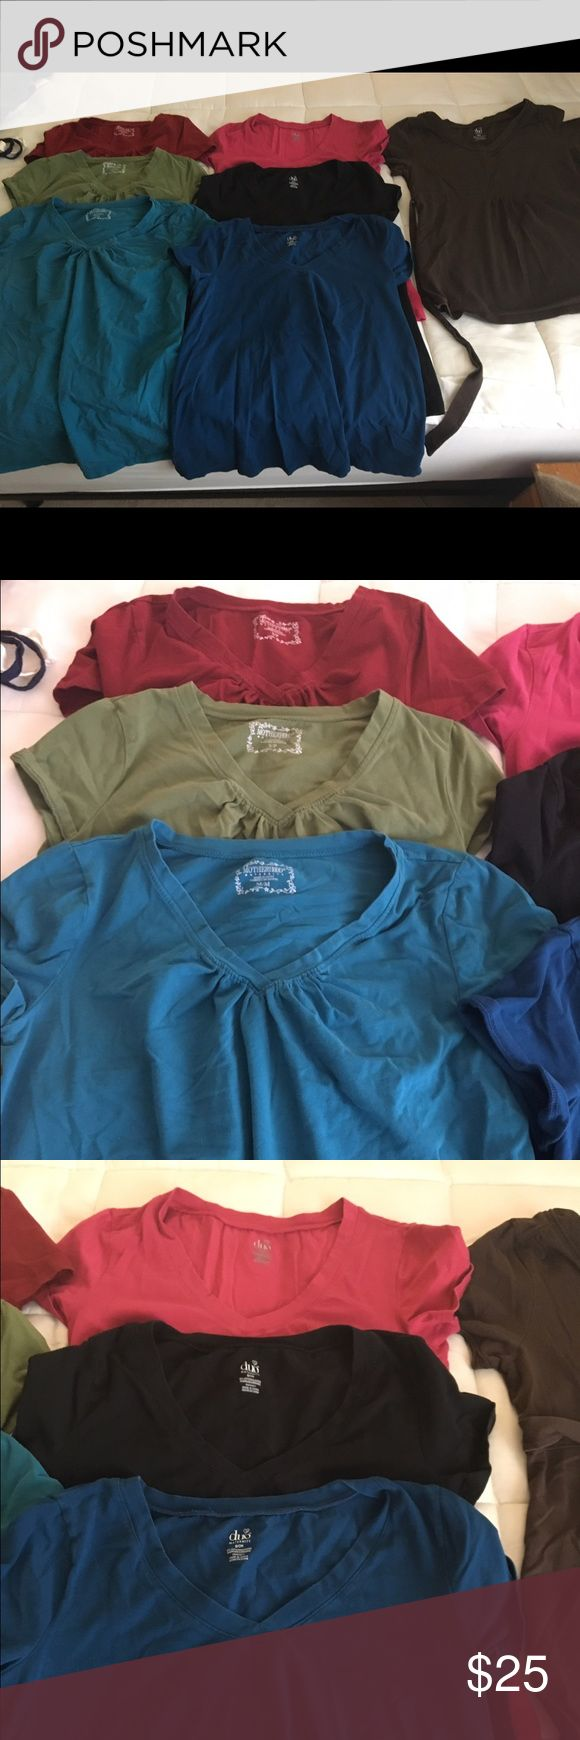 Maternity TShirt Lot VGUC+ Maternity short sleeve TShirts in various colors. Sizes S and M. From a smoke free home. Tops Tees - Short Sleeve